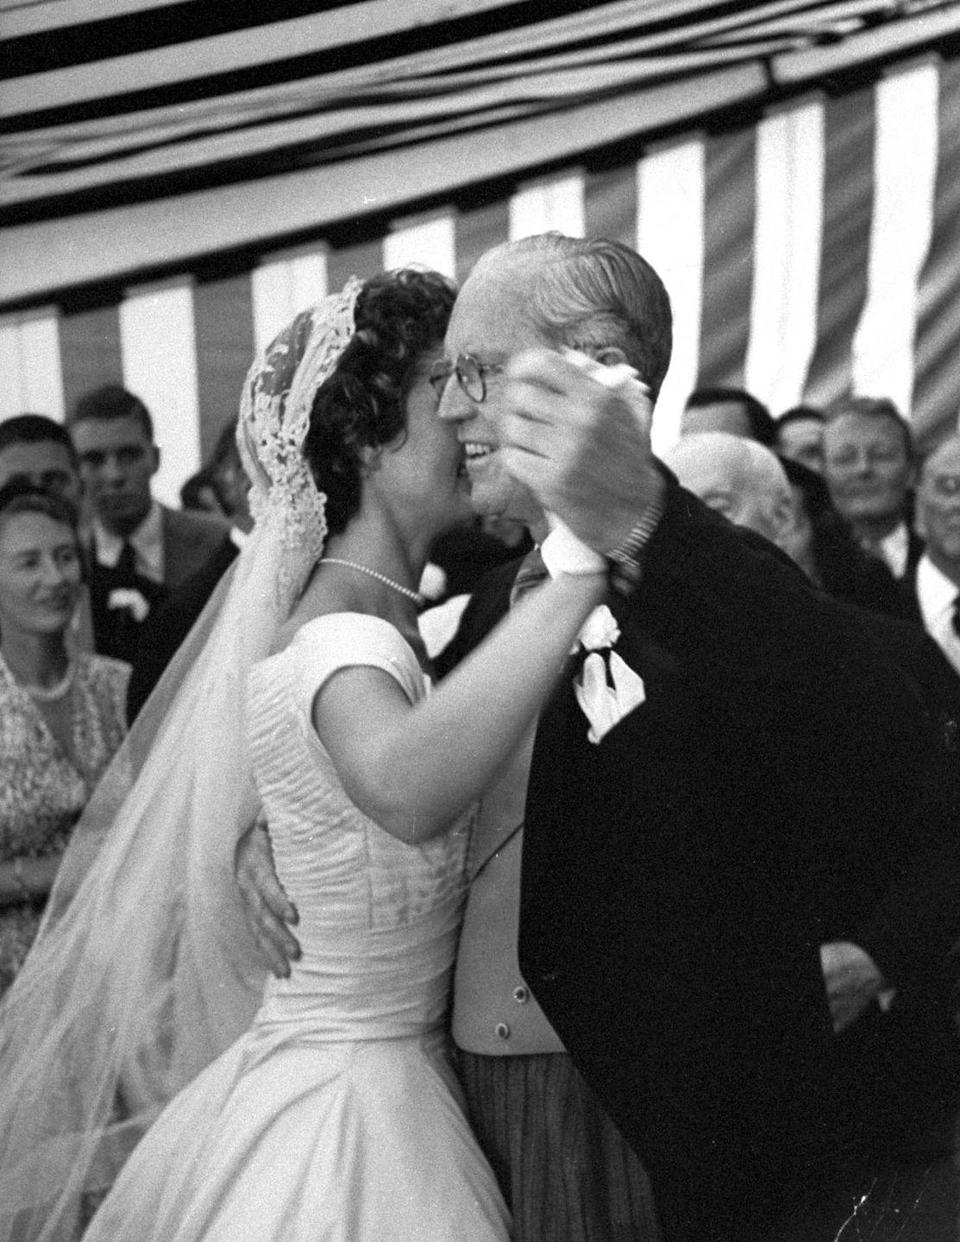 <p>The bride shared a dance with her father-in-law.</p>